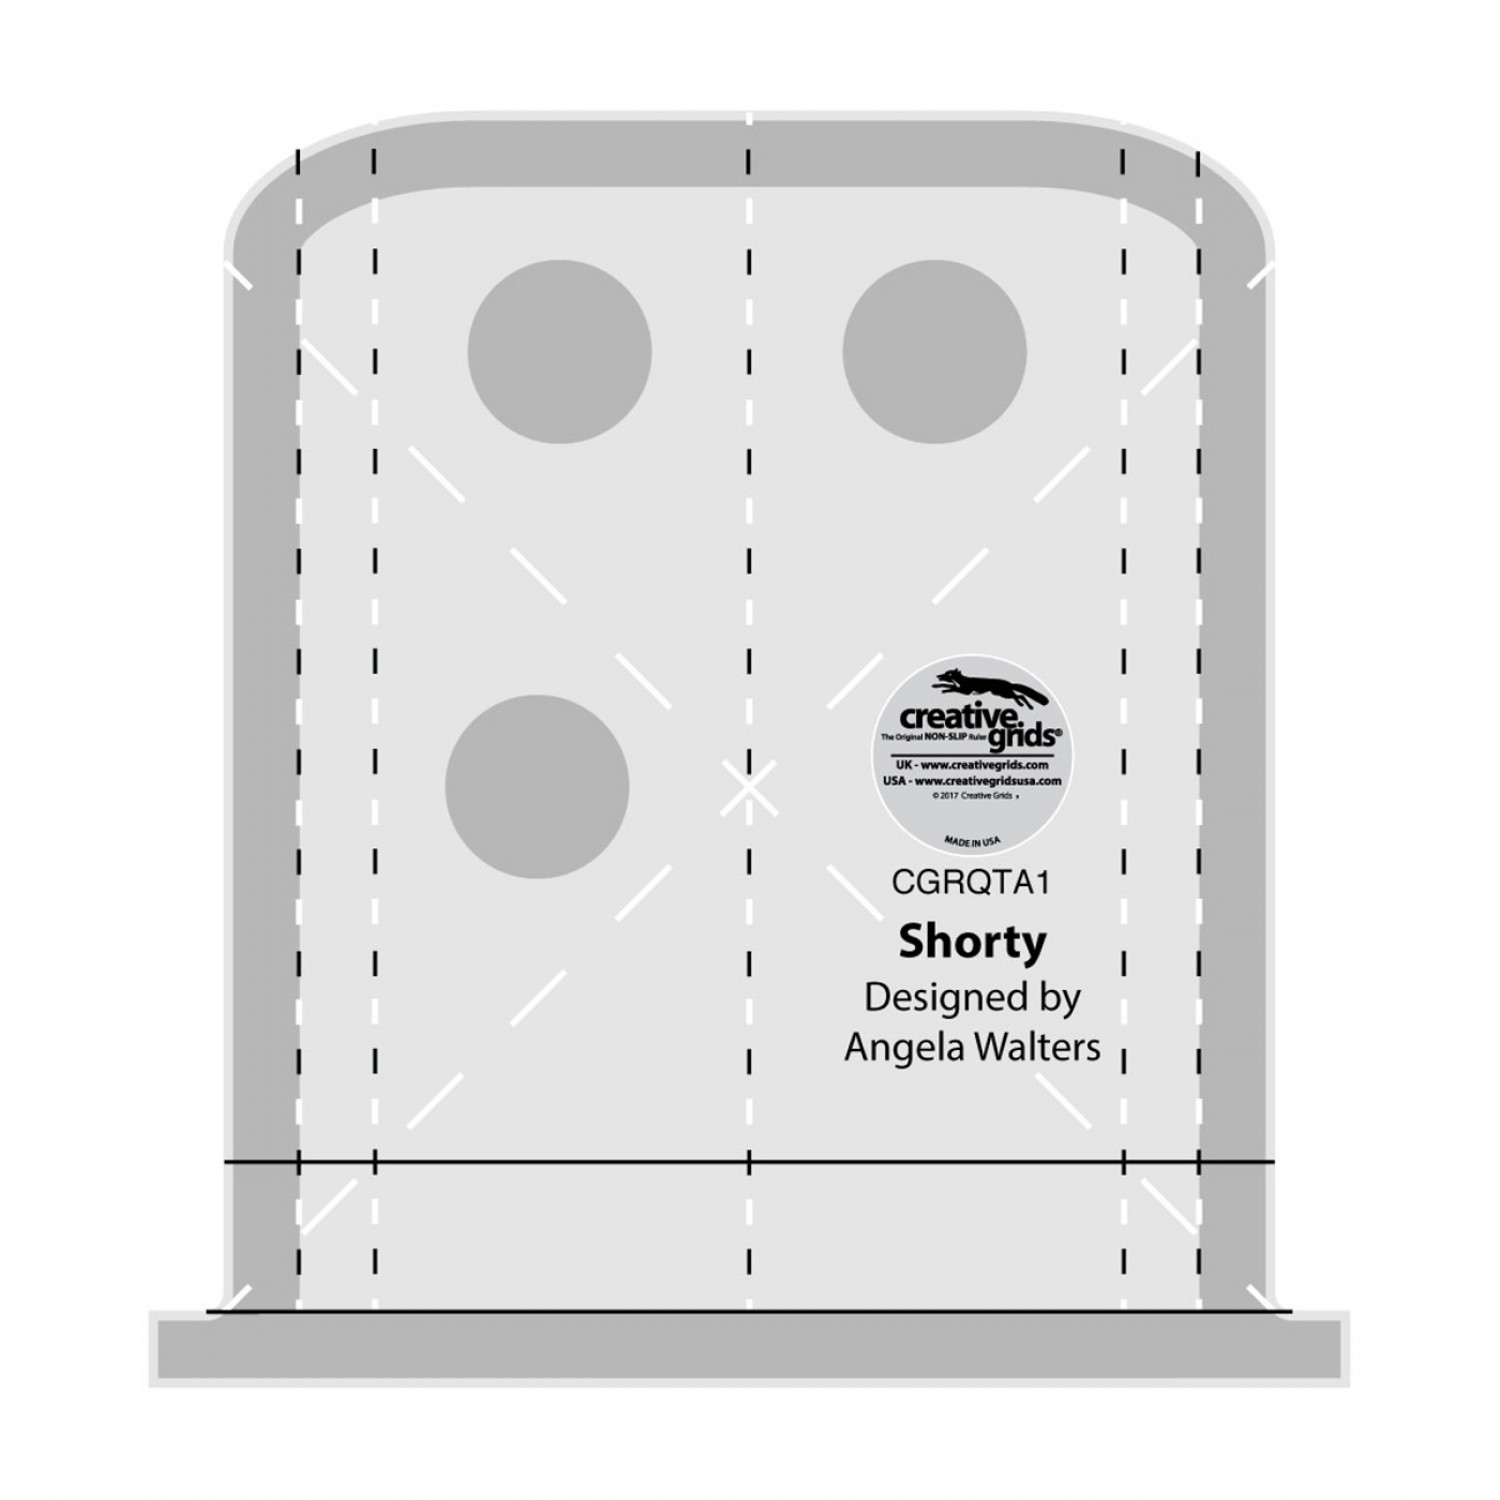 The Shorty is a machine quilting ruler designed by Angela Walters to use on both your home sewing machine and your longarm quilting machine!